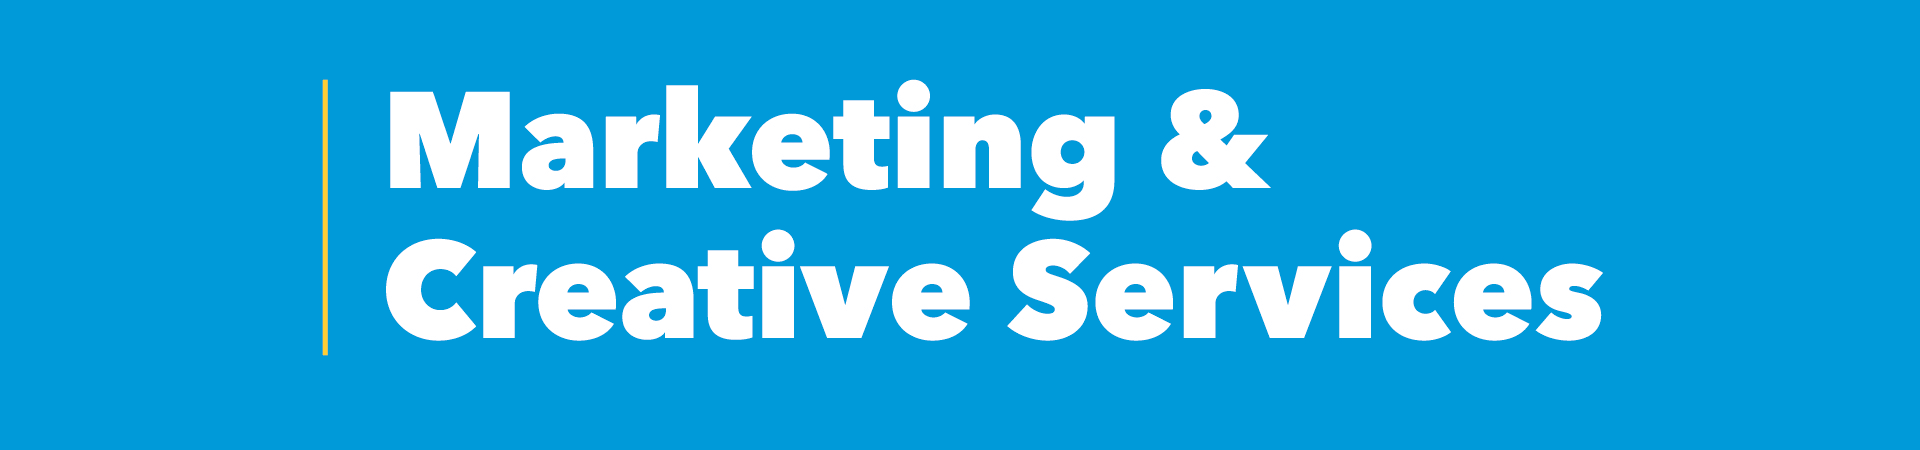 Marketing & Creative Services